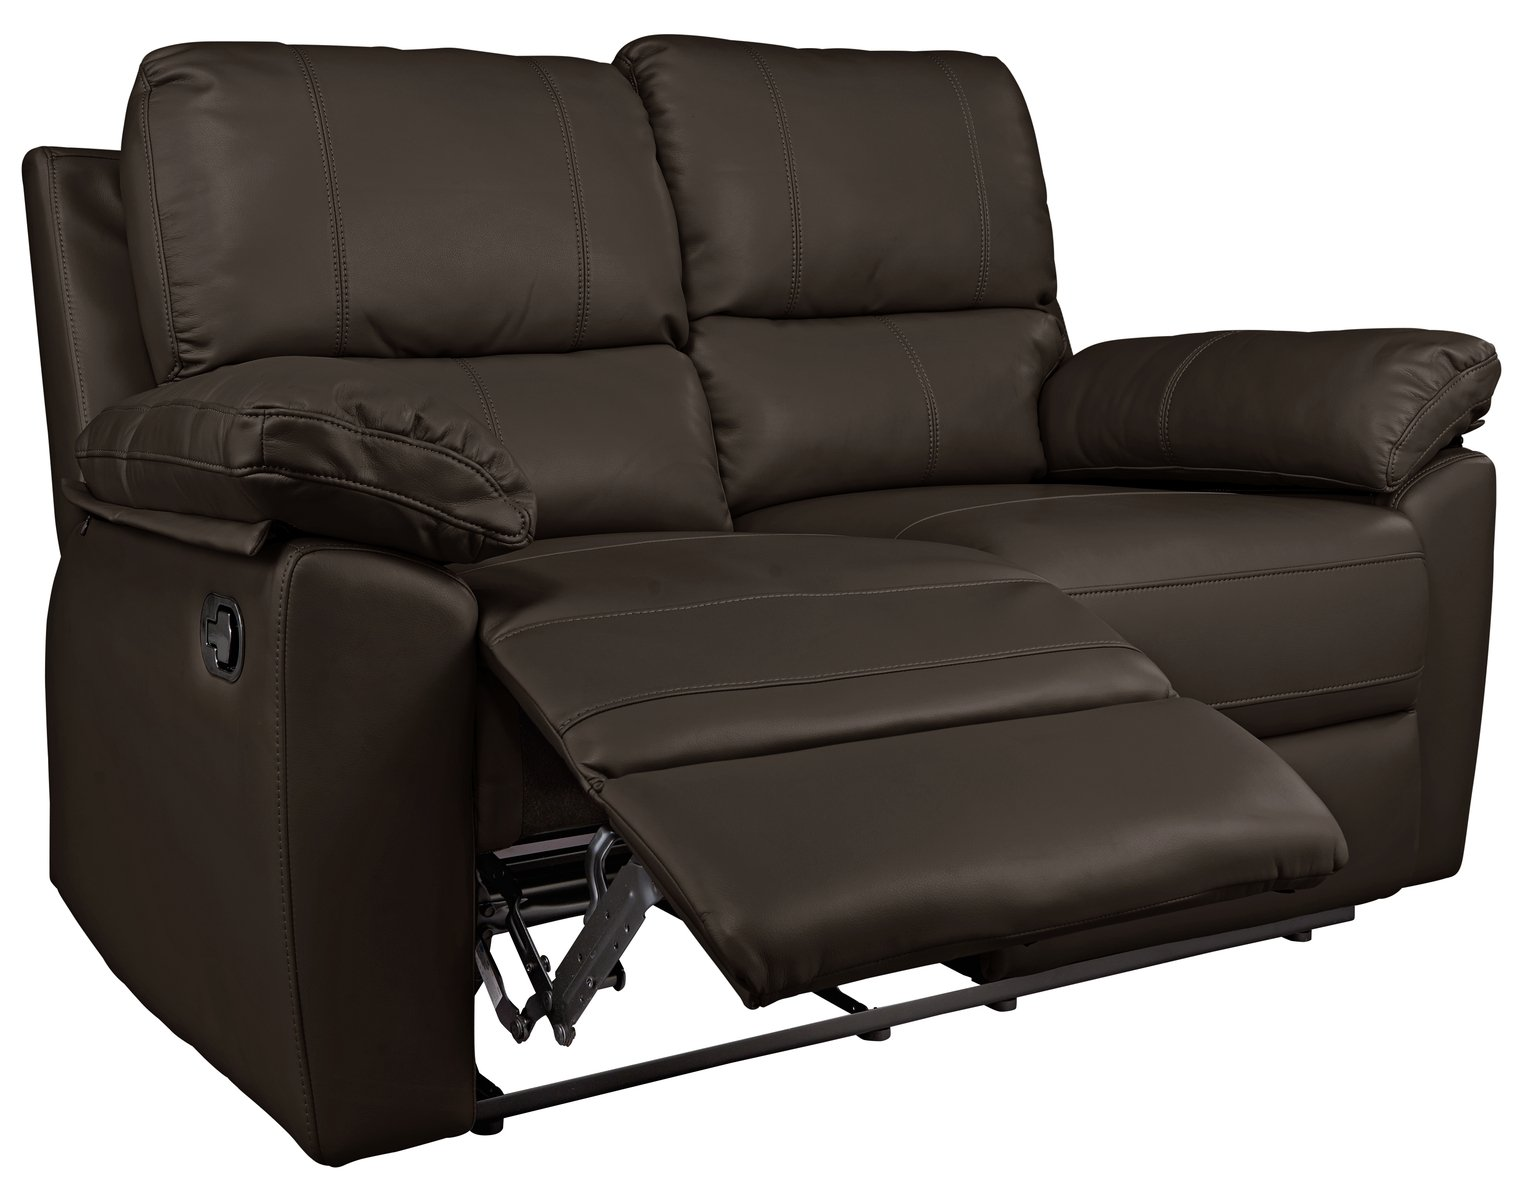 Buy Argos Home Toby 2 Seat Faux Leather Recliner Sofa Chocolate